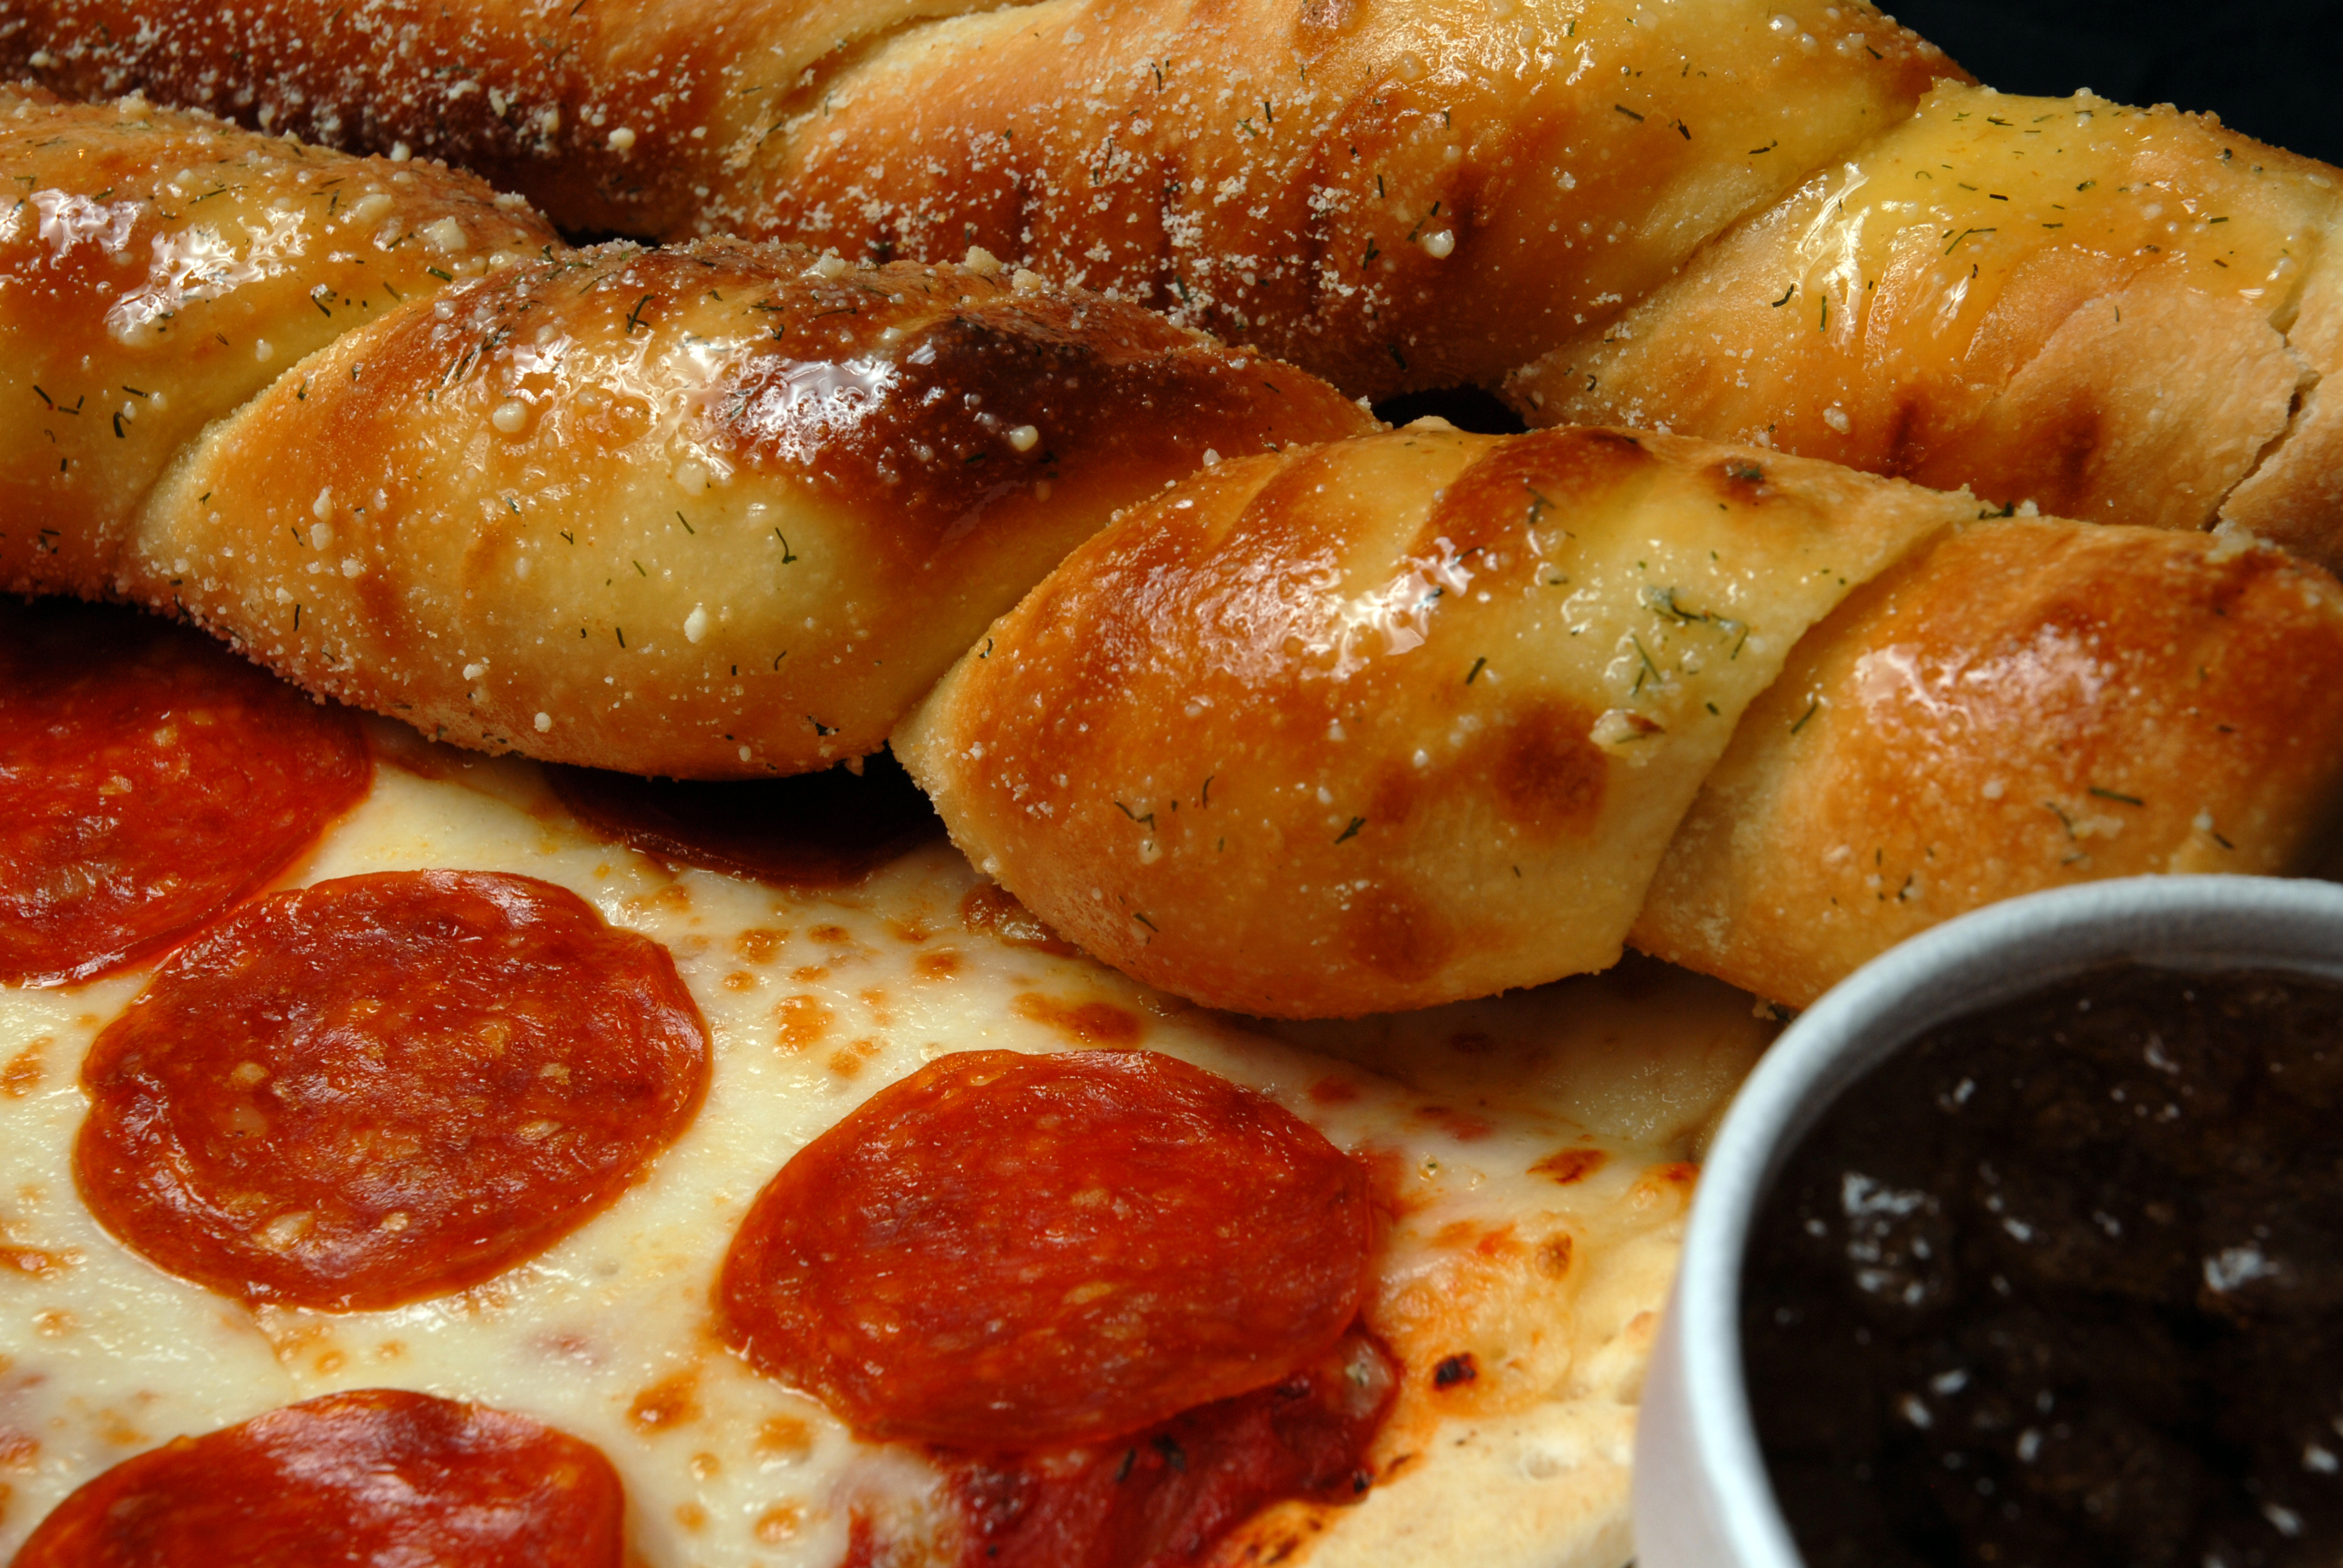 Pizza and bread sticks with sauce